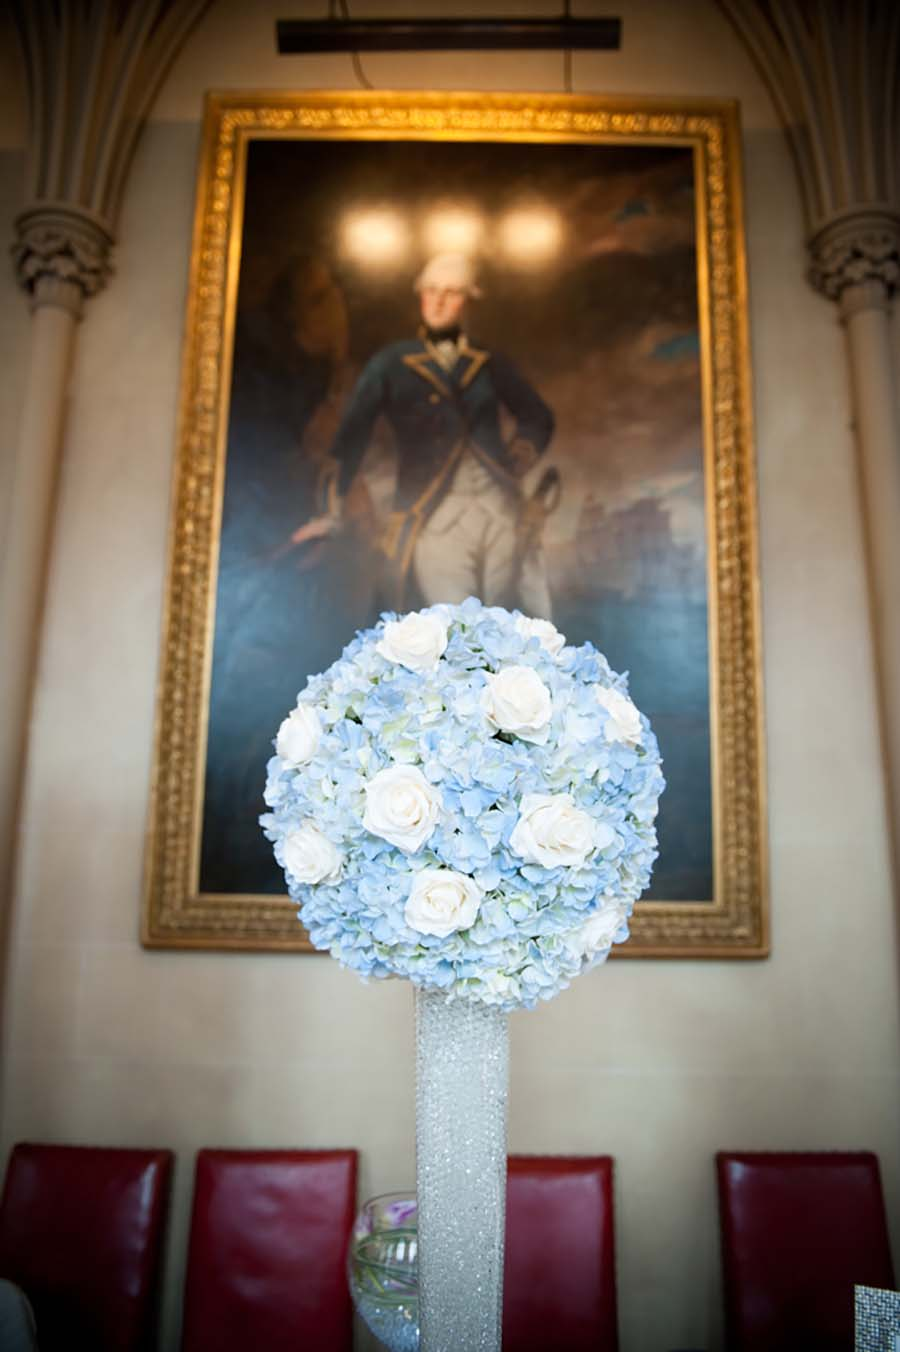 Buckinghams-at-belvoir-castle-wedding-fair-rachael-connerton-photography-22